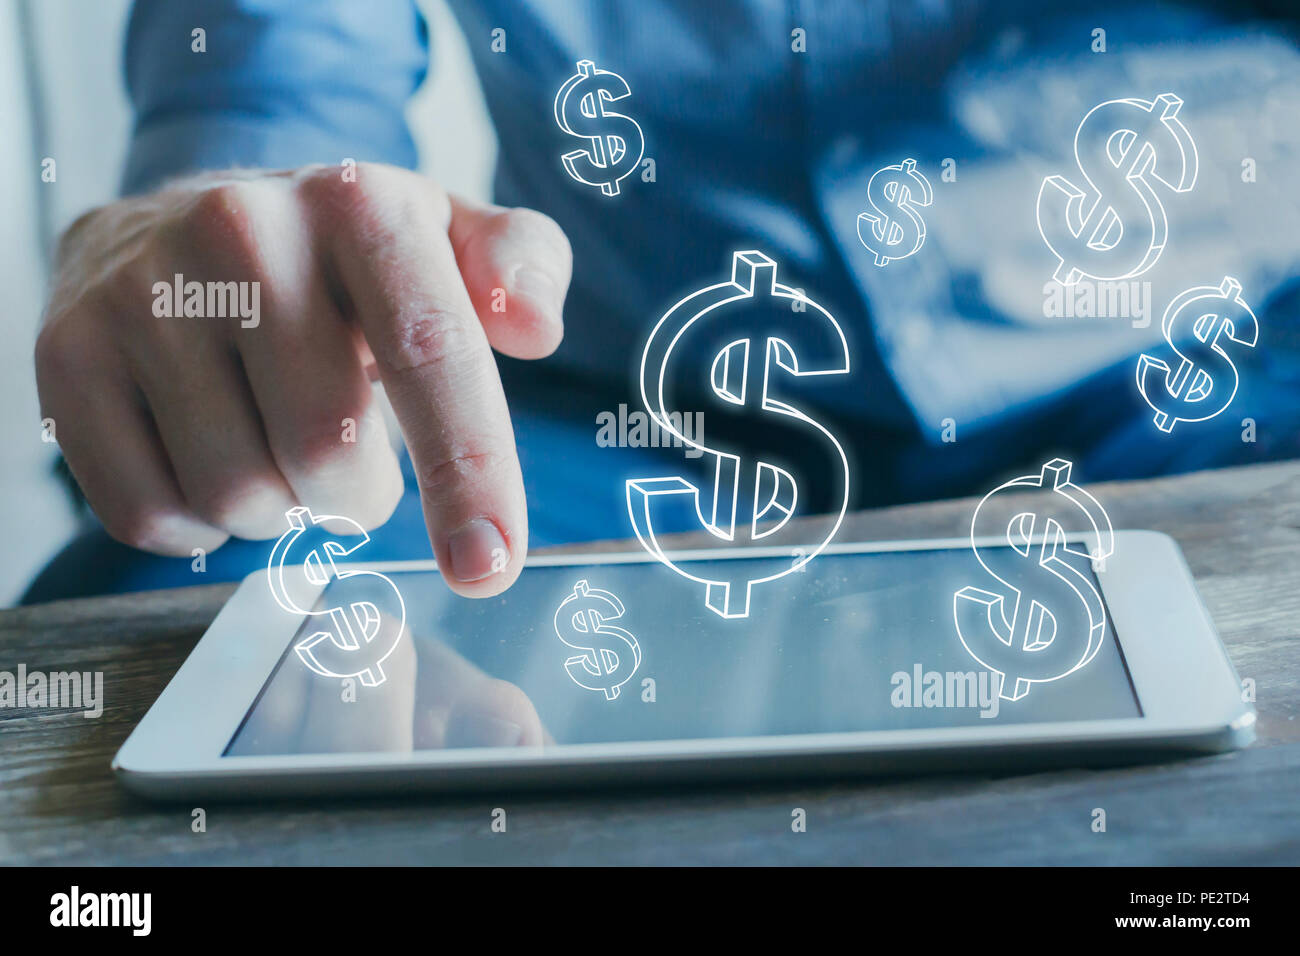 financial concept, online business profit, e-business, earn money on internet, e-commerce - Stock Image